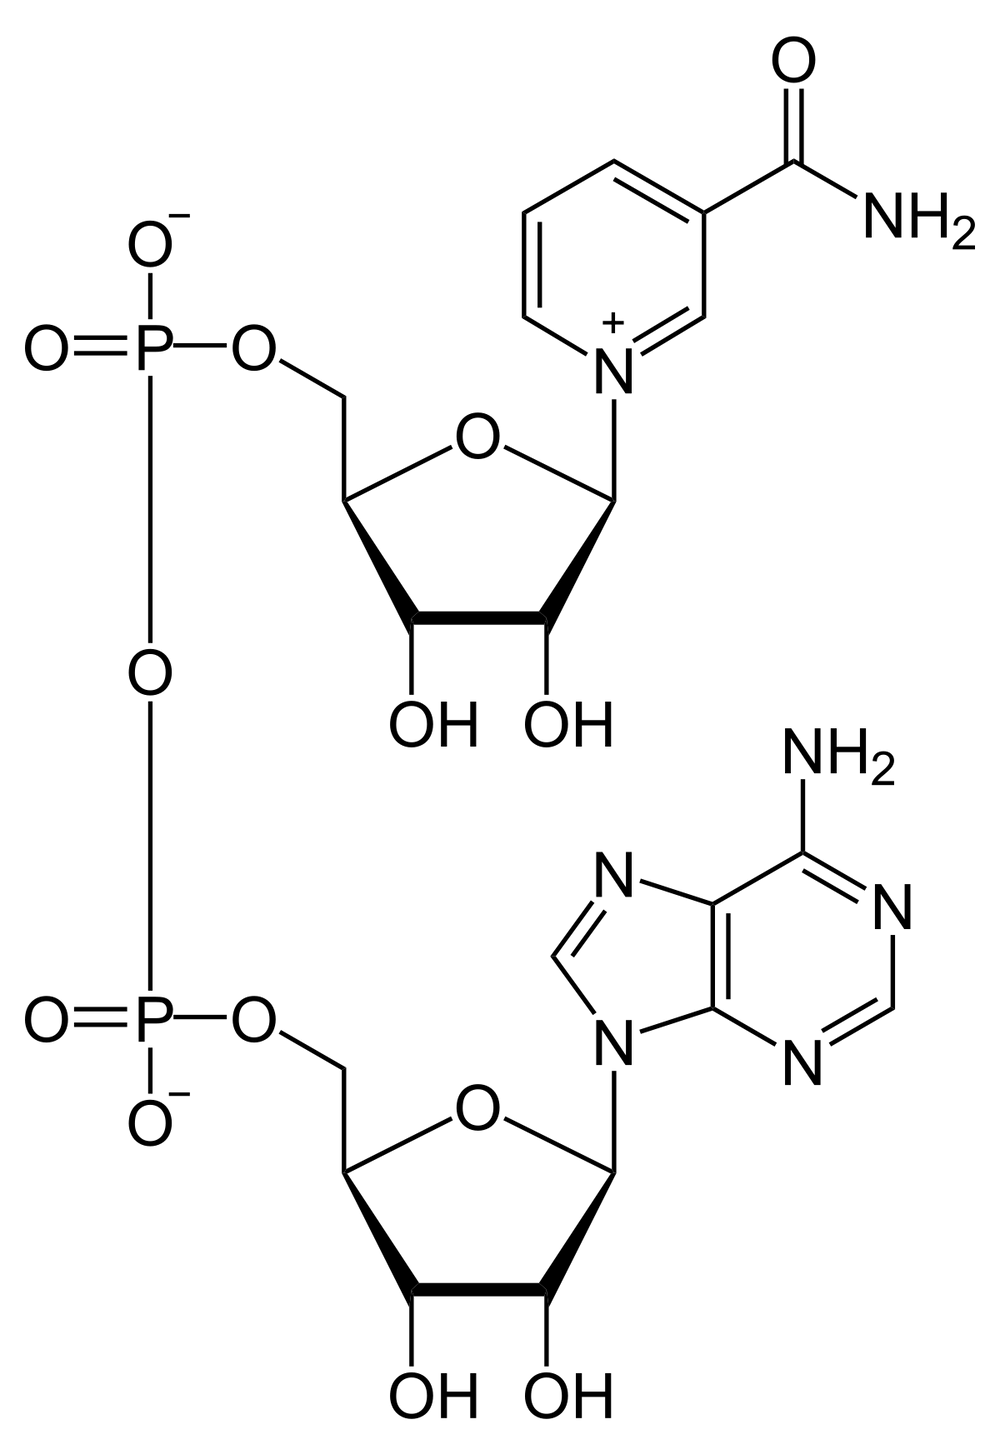 NAD structure